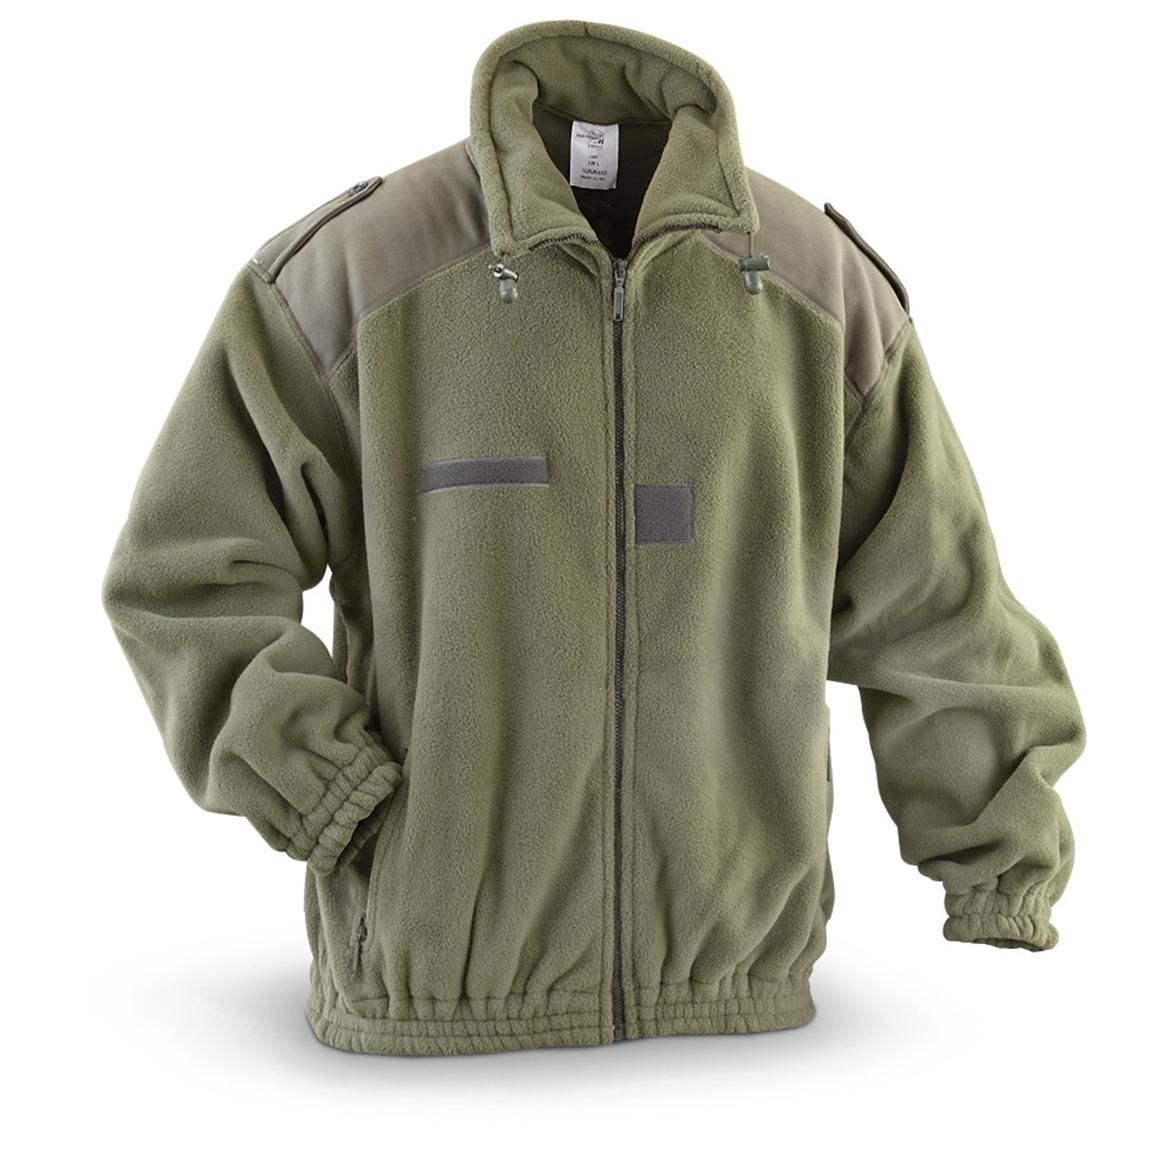 NATO Military Surplus Heavyweight Fleece Jacket, New | Military ...